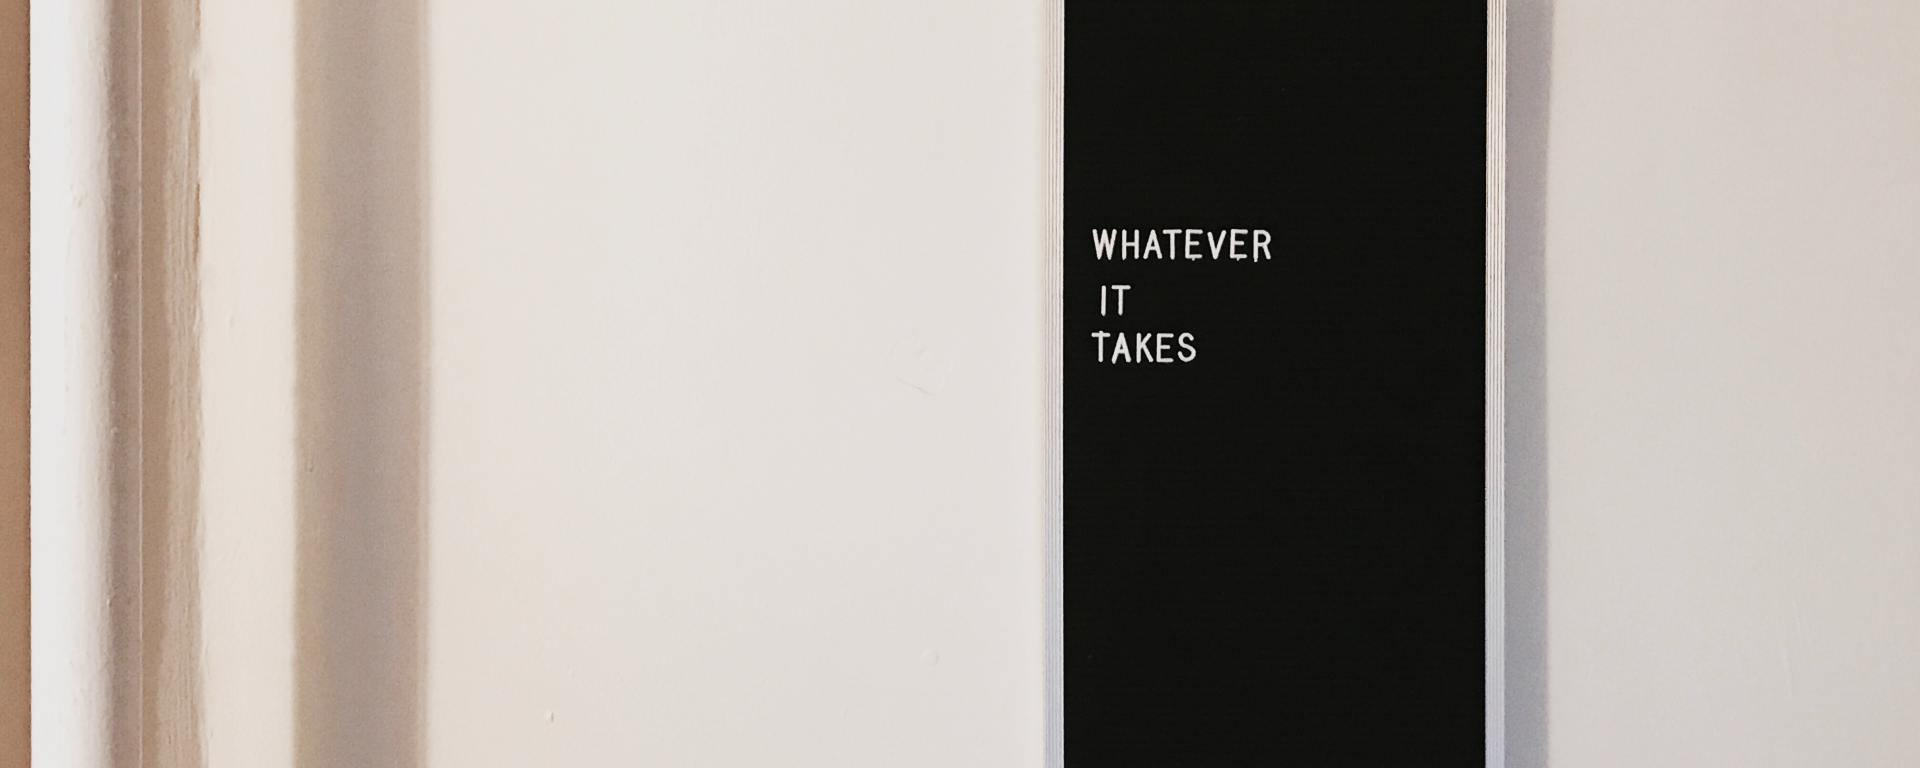 An image of a sign stating 'whatever it takes'.